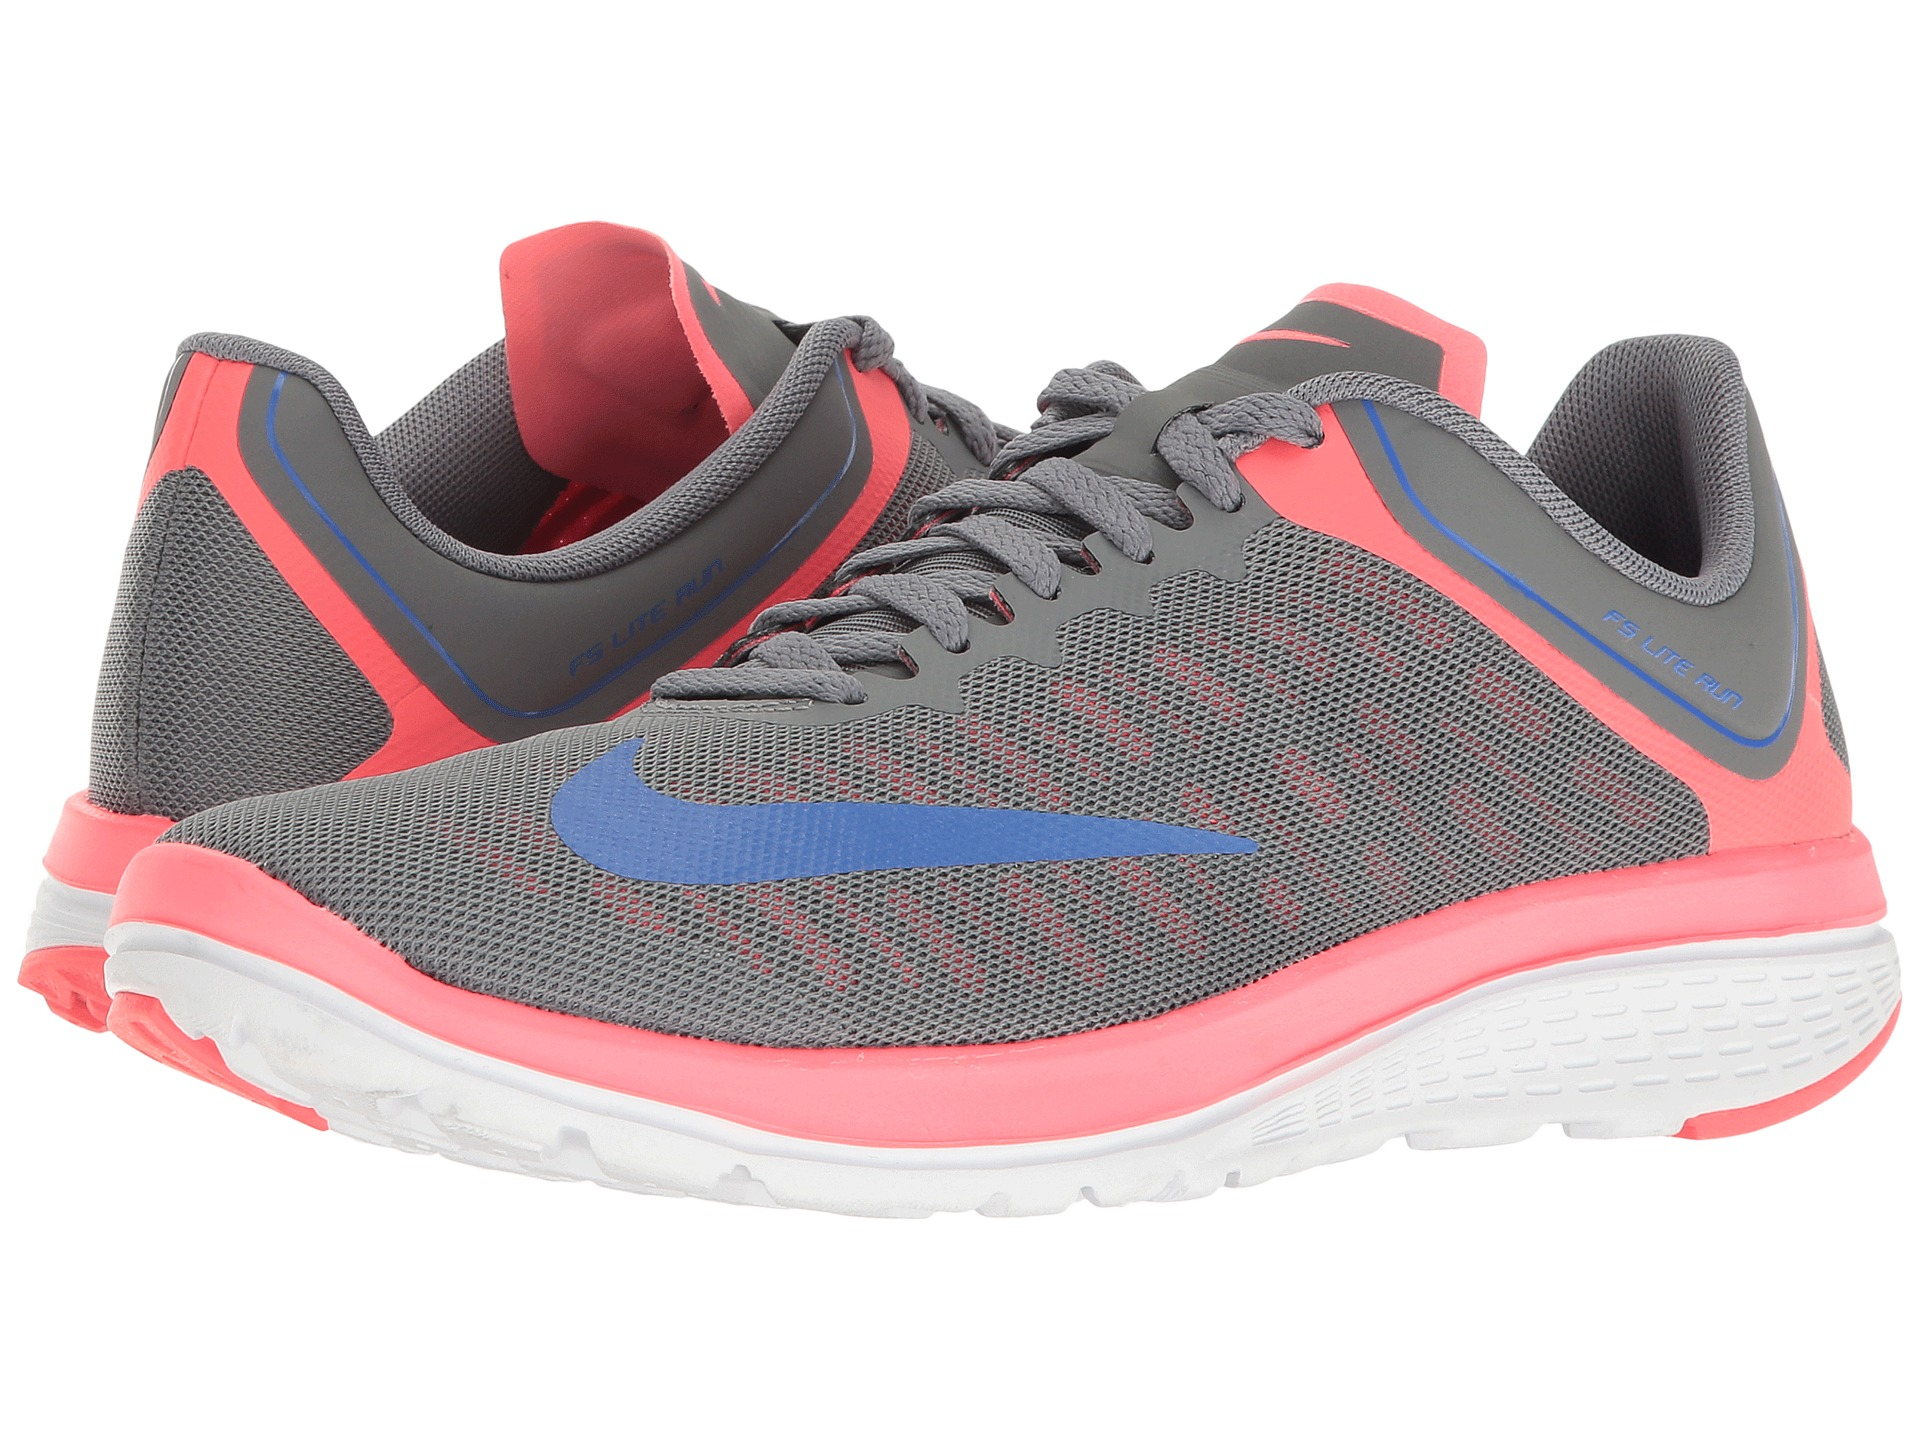 Nike FS Lite Run 3 Natural Running Shoe Women Black, Neon